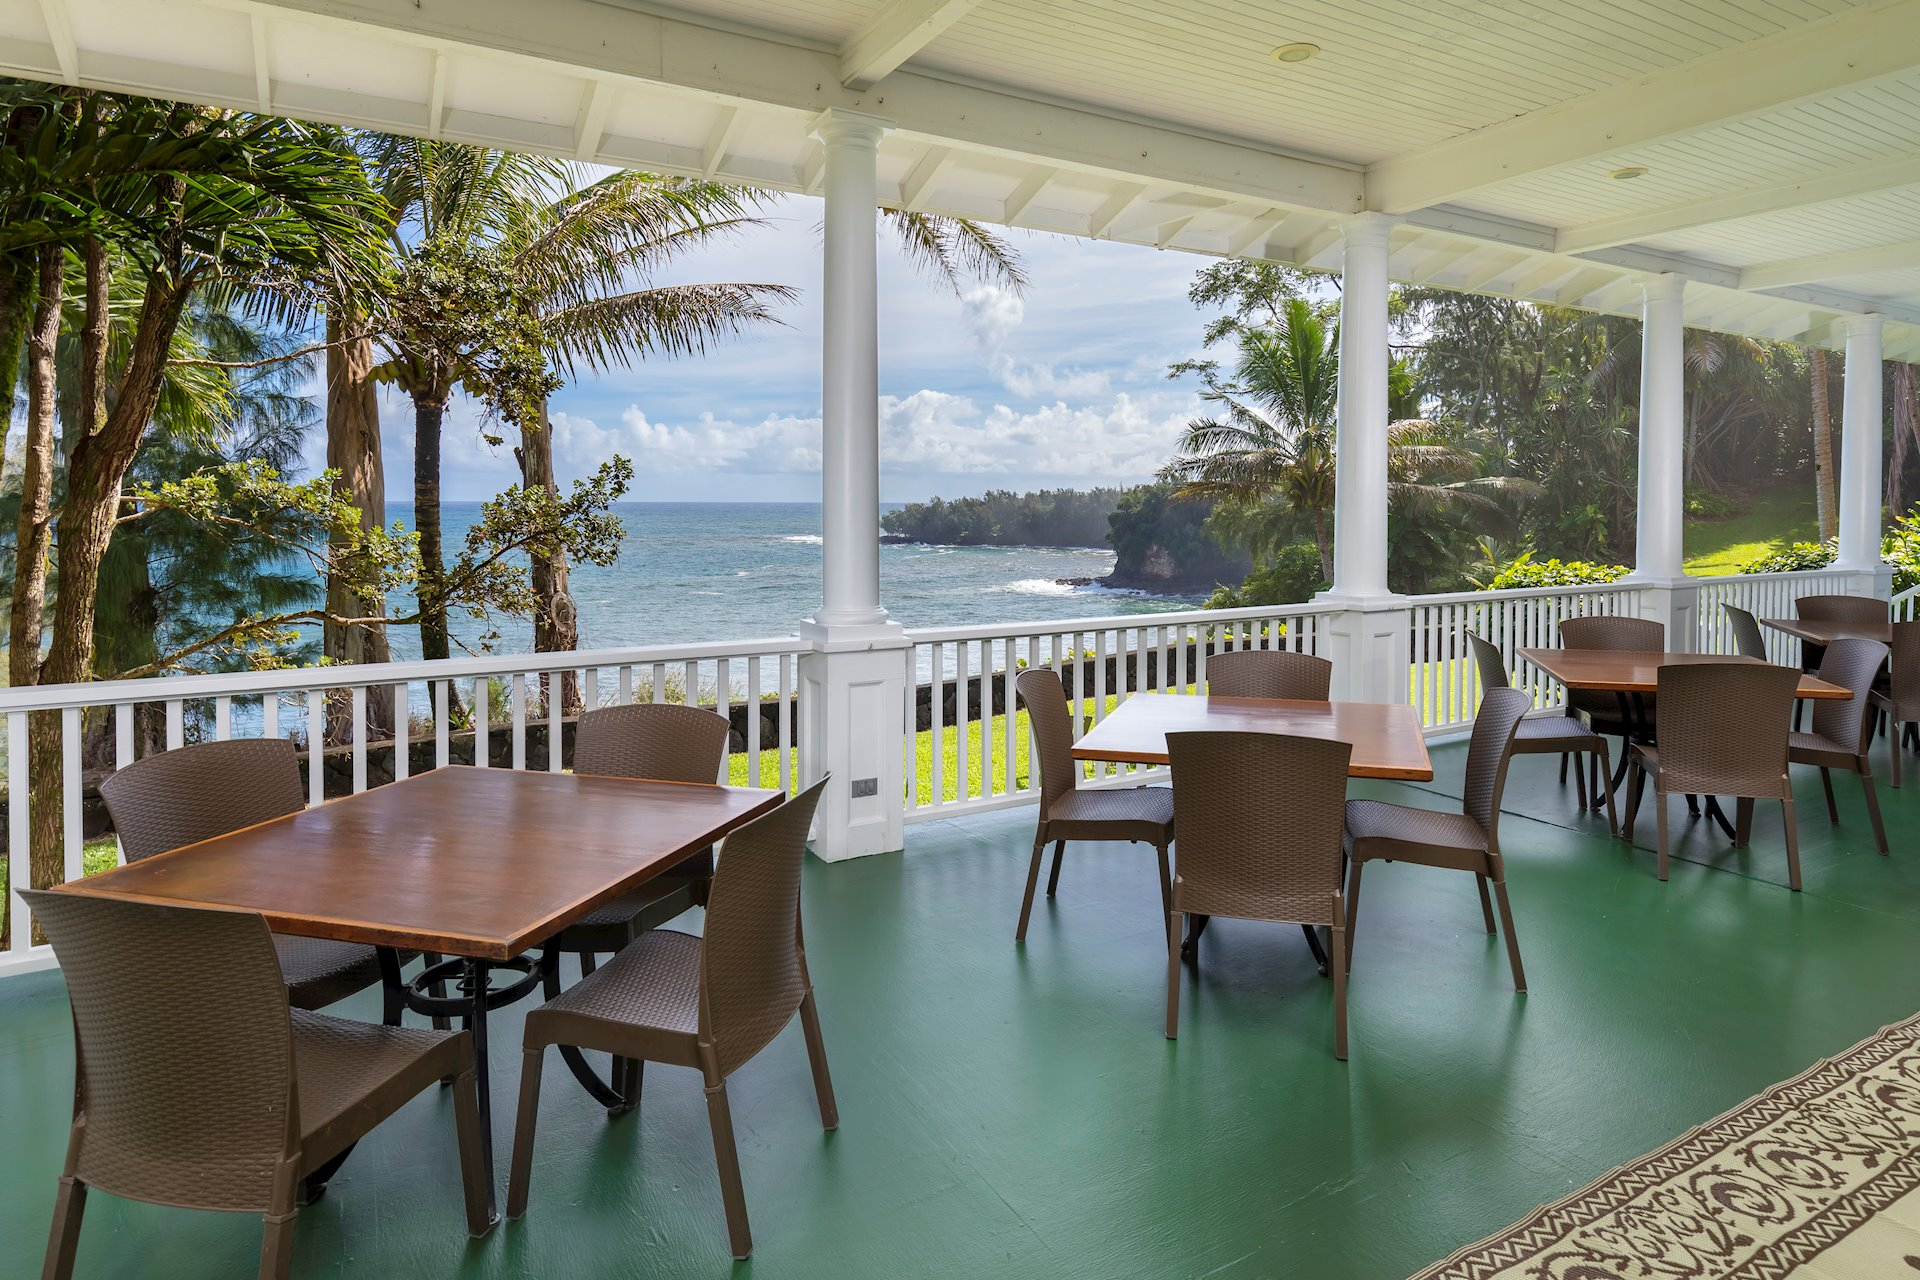 Large oceanfront verandas for gatherings, special events such as weddings, etc.